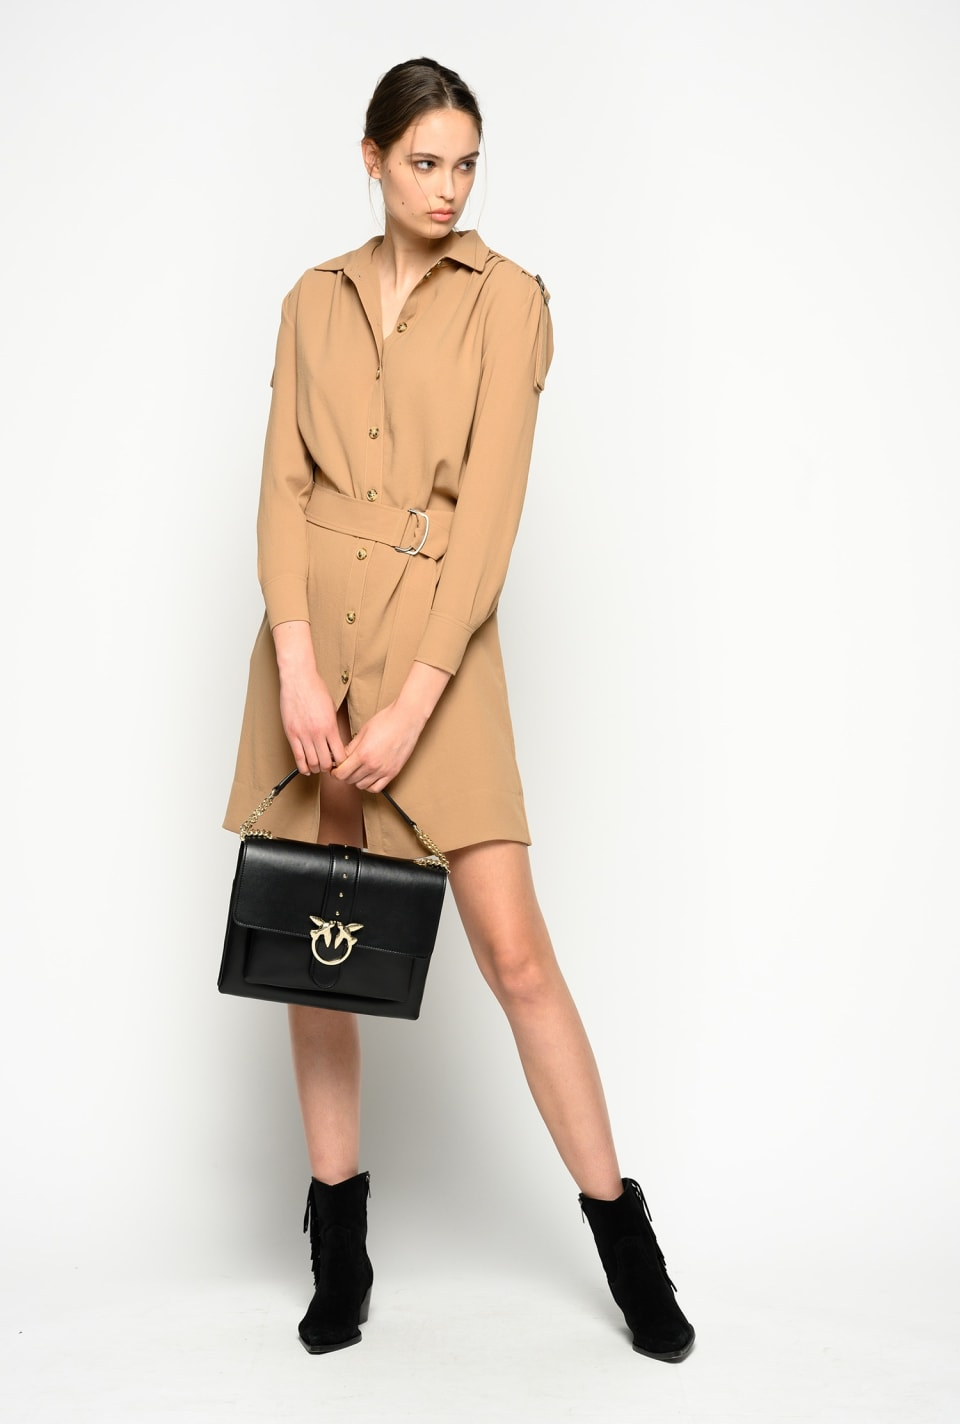 Military style shirtdress